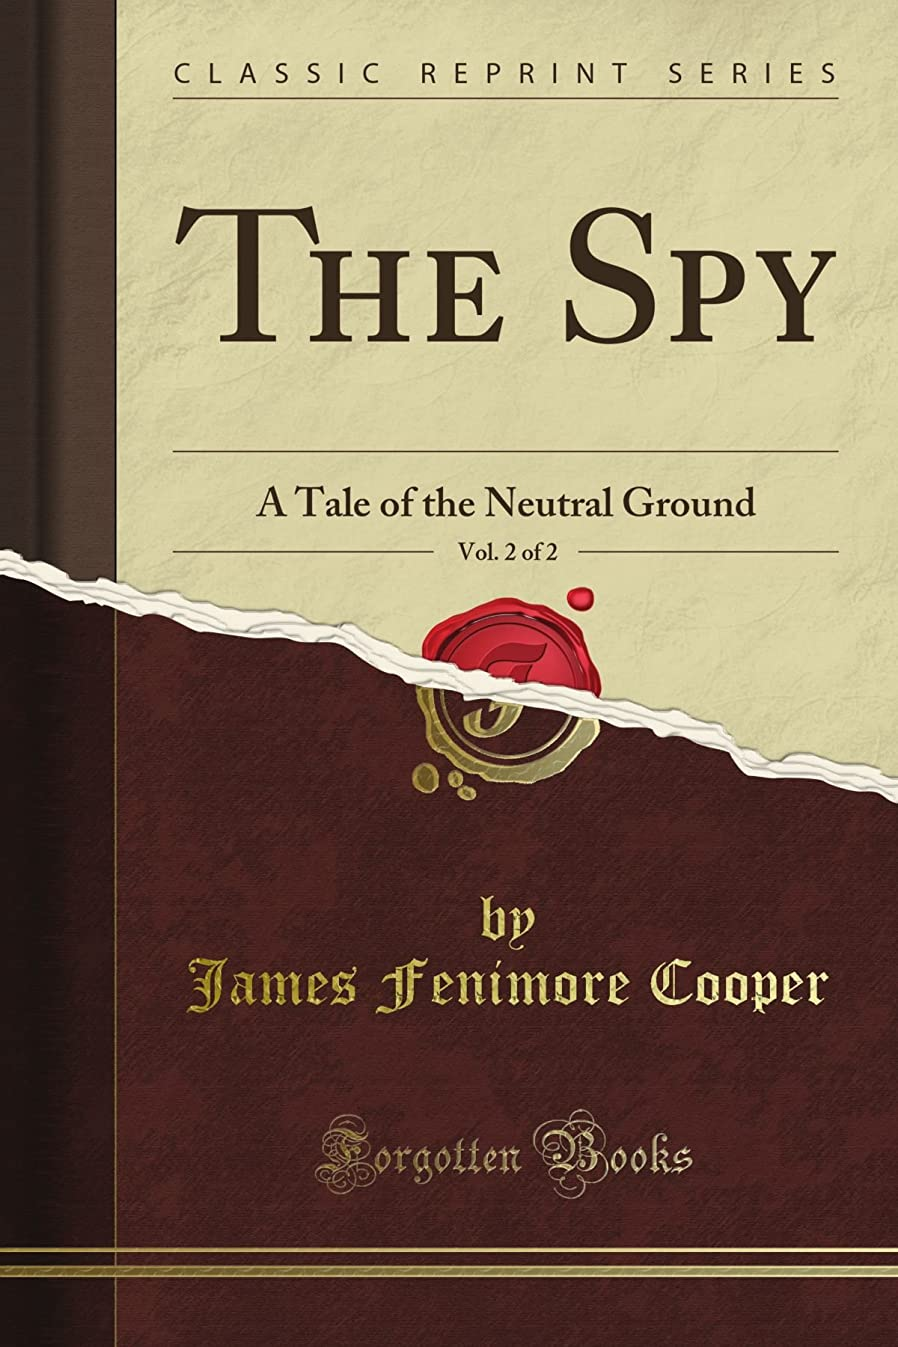 歴史的納得させる割れ目The Spy: A Tale of the Neutral Ground, Vol. 2 of 2 (Classic Reprint)